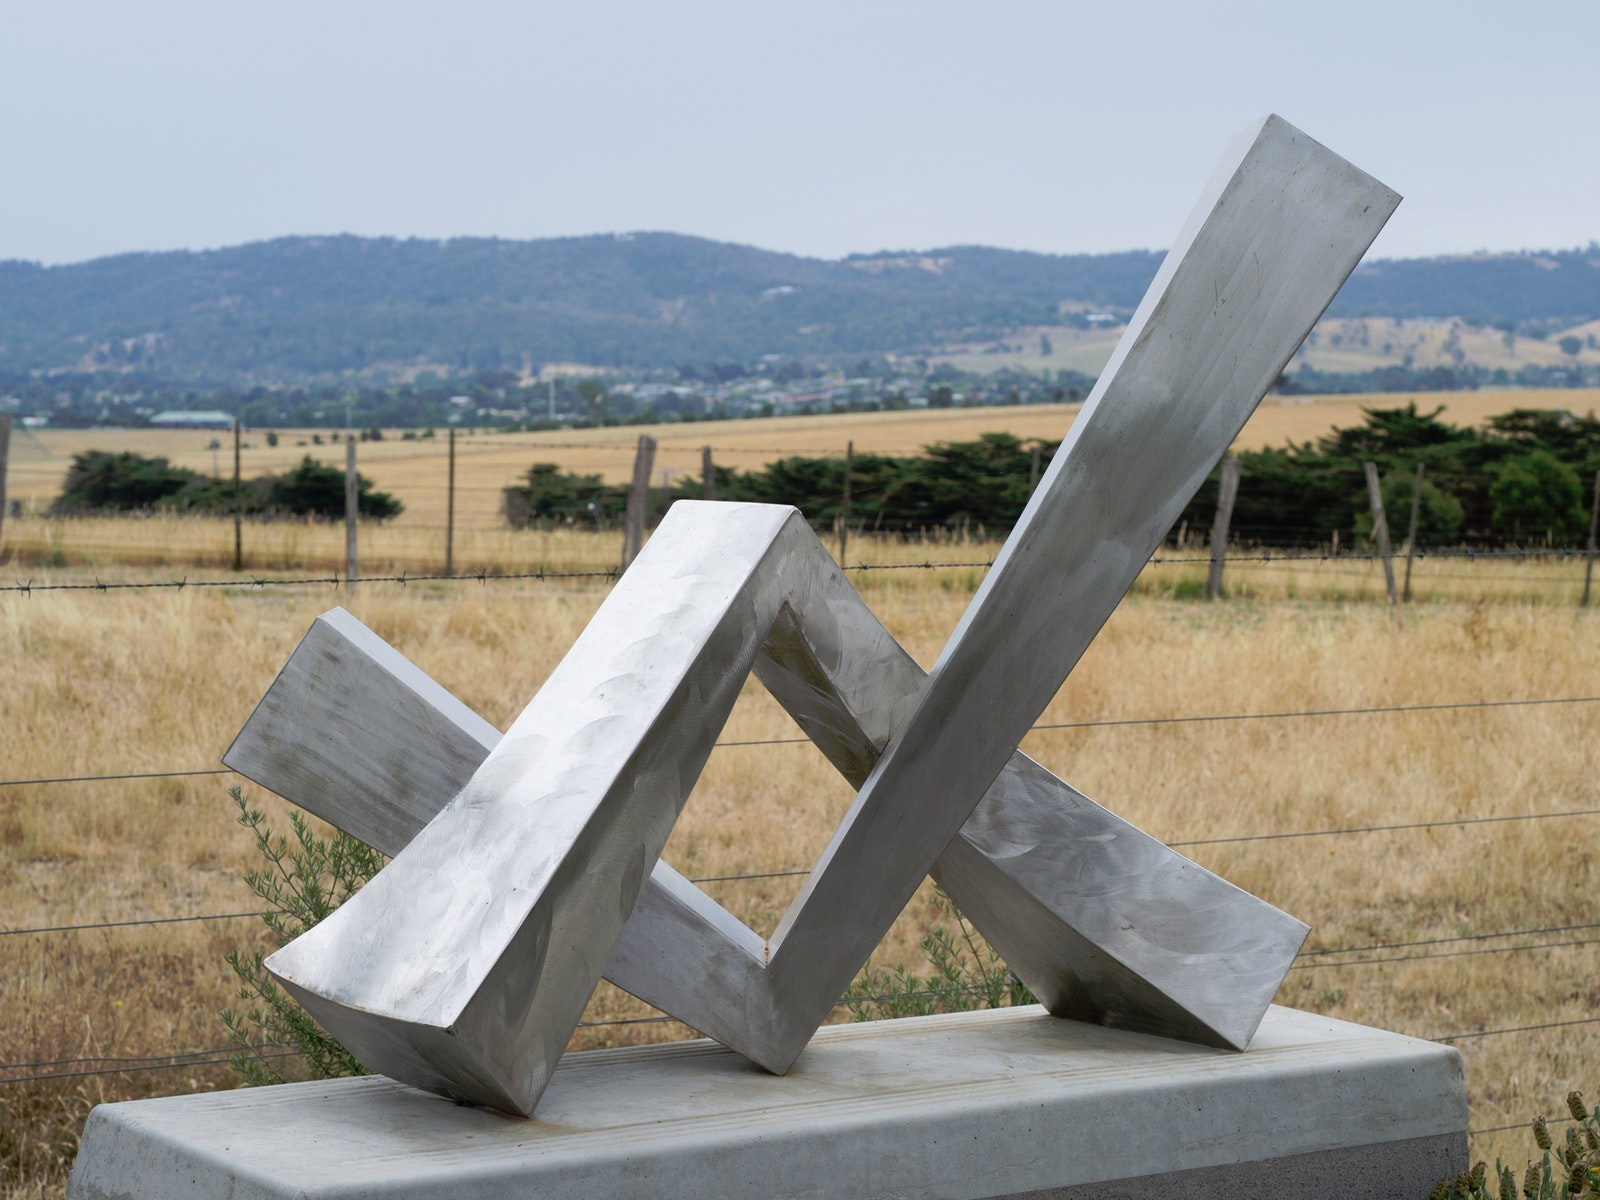 Stainless steel sculpture by Ernst Fries